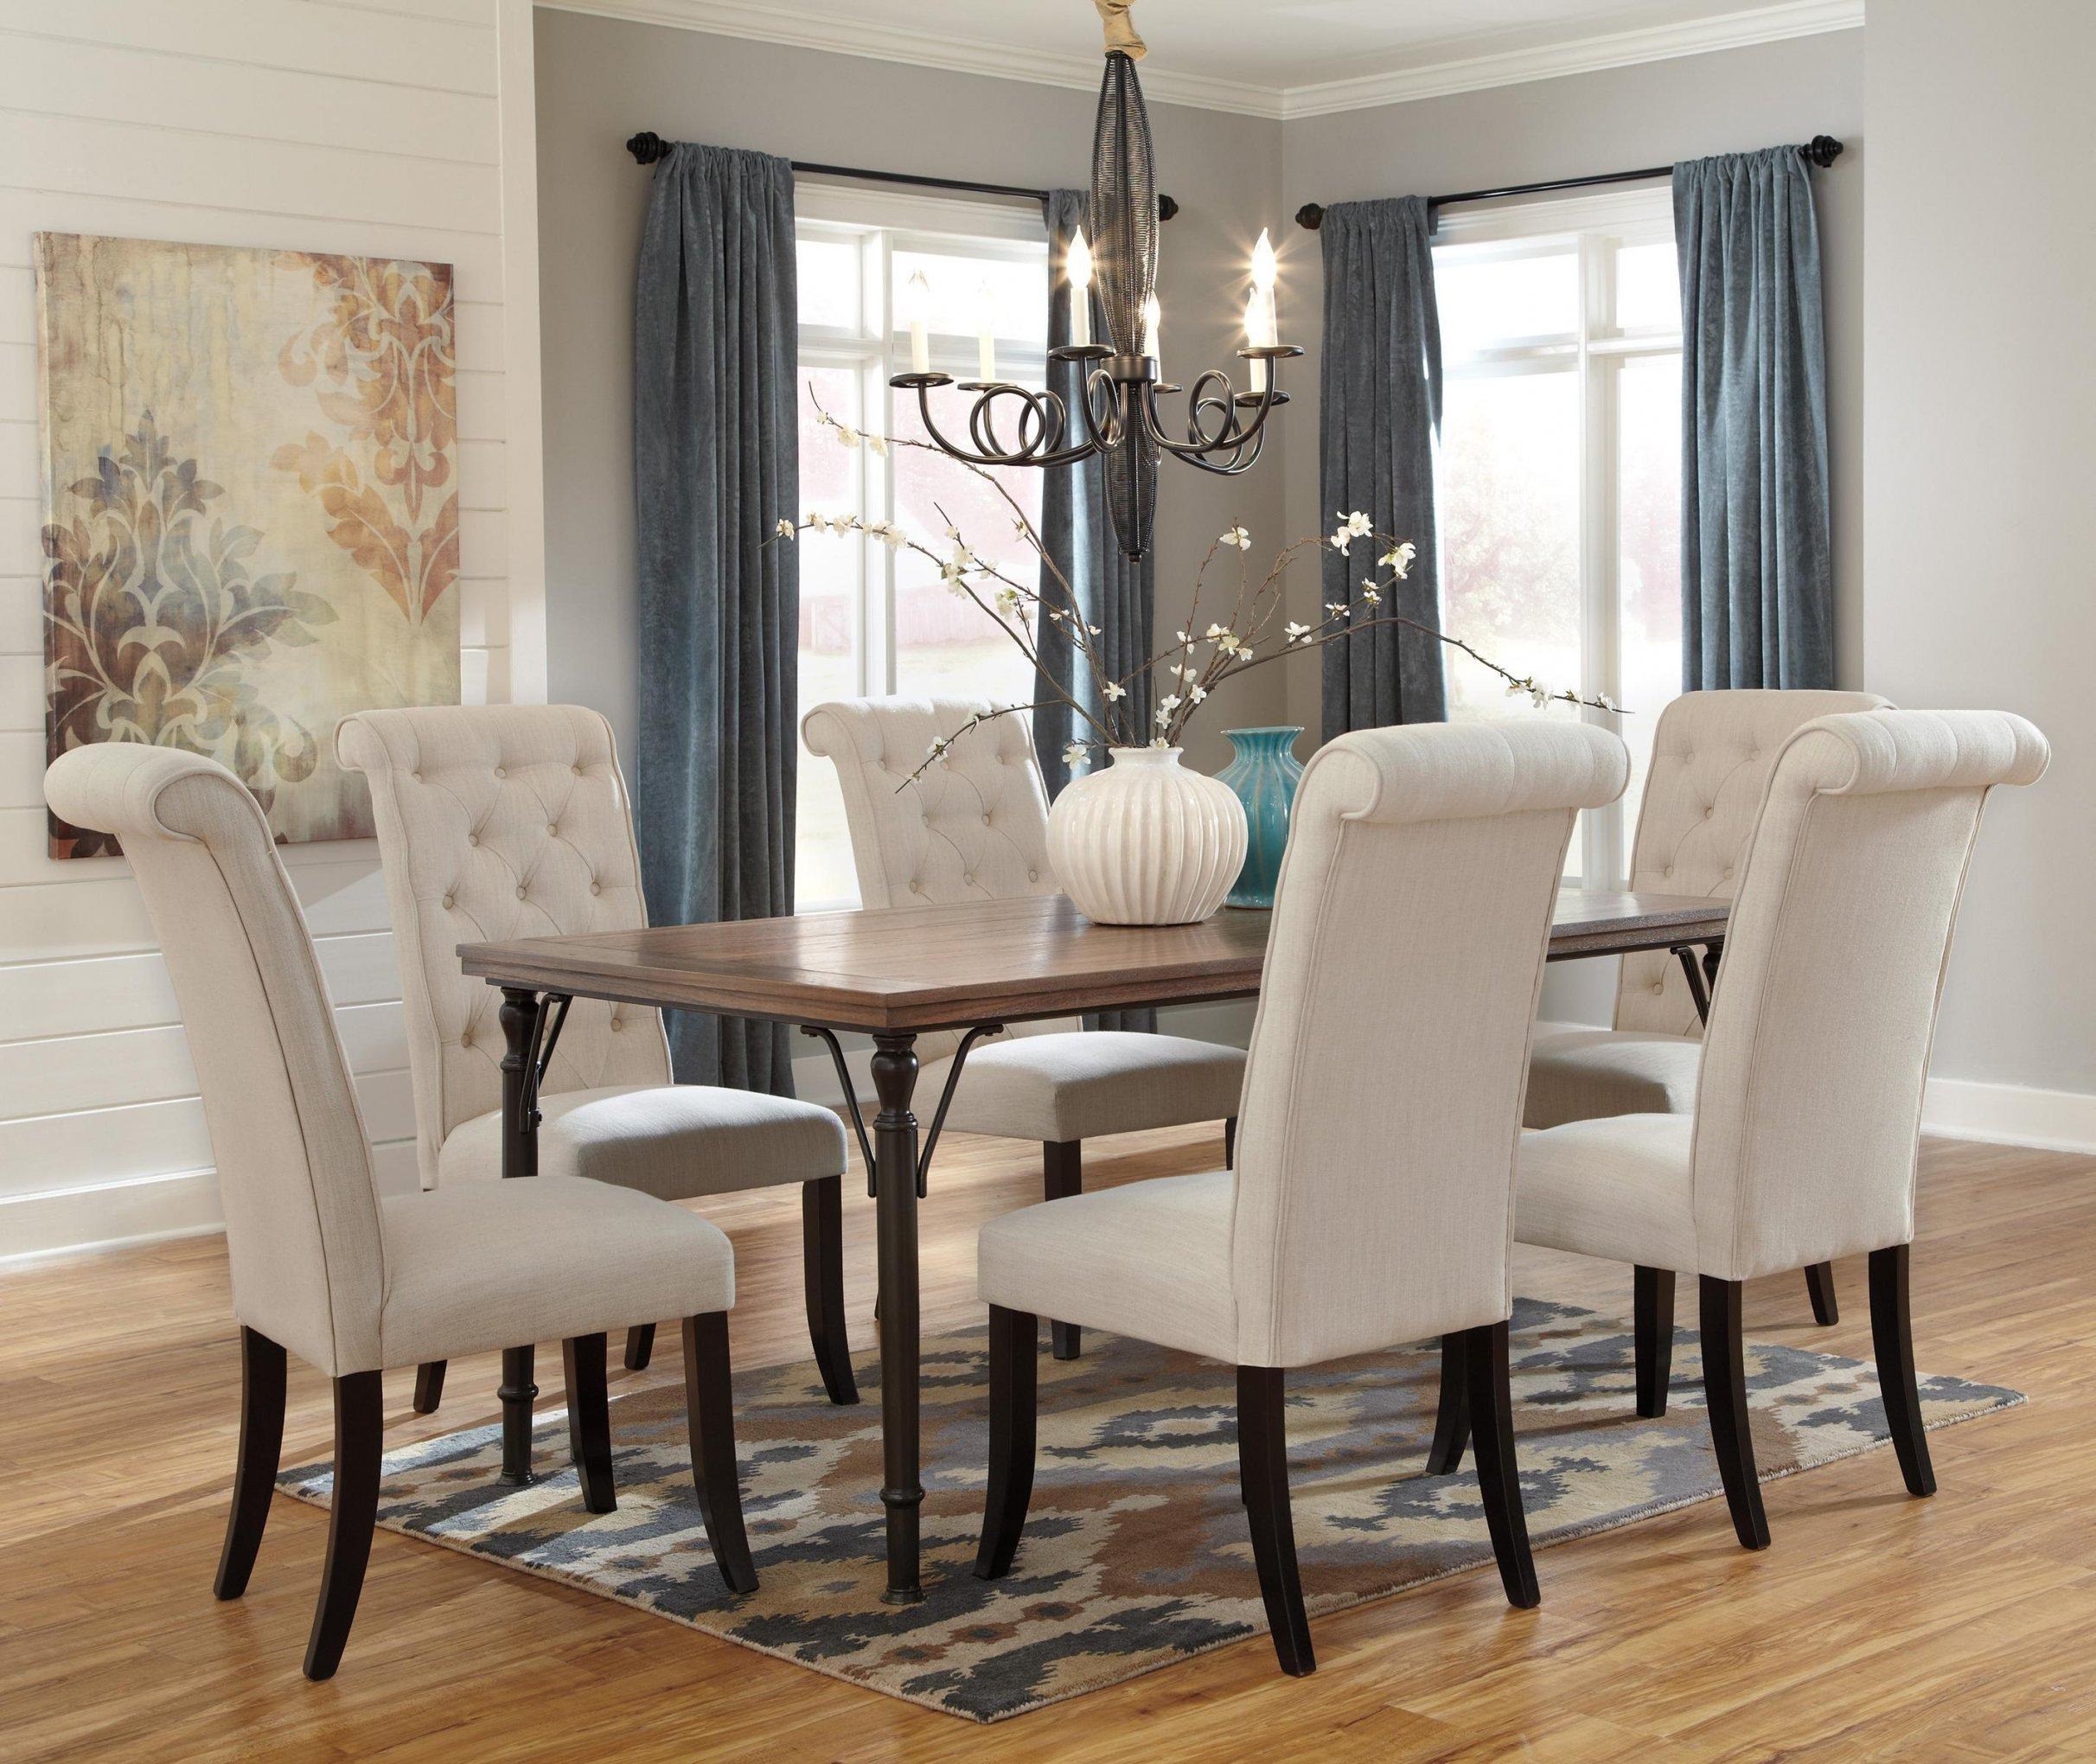 Image of: Wood Dining Room Table And Chairs